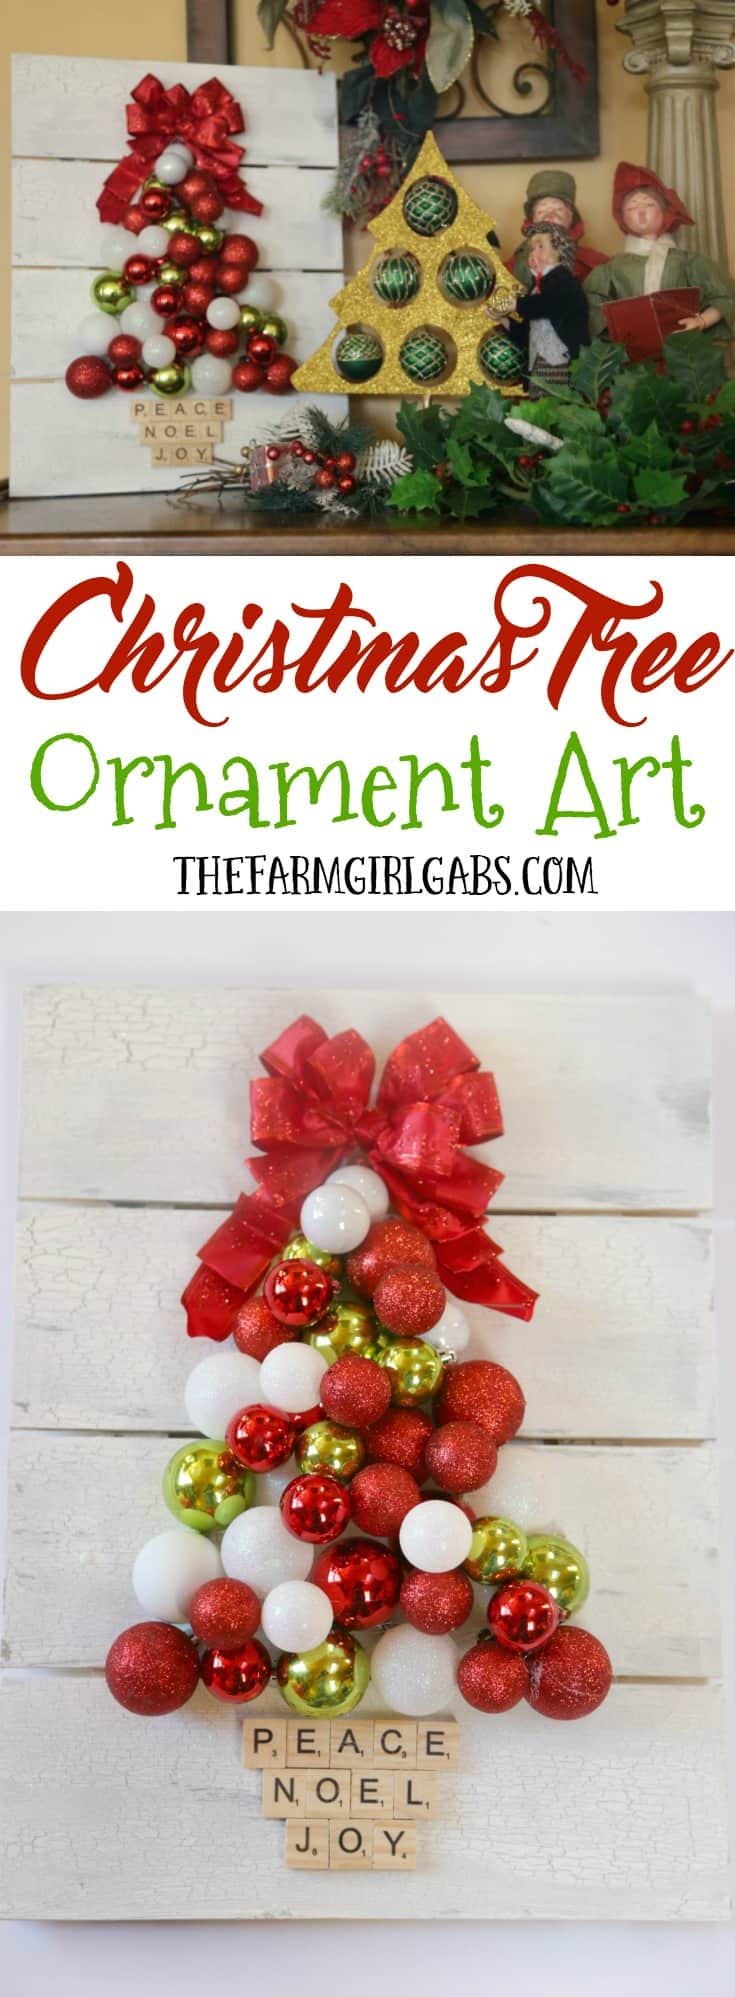 Make it Shine This Holiday Season With The Simple DIY Christmas Tree Ornament Art. This craft project will brighten up your holiday decor.